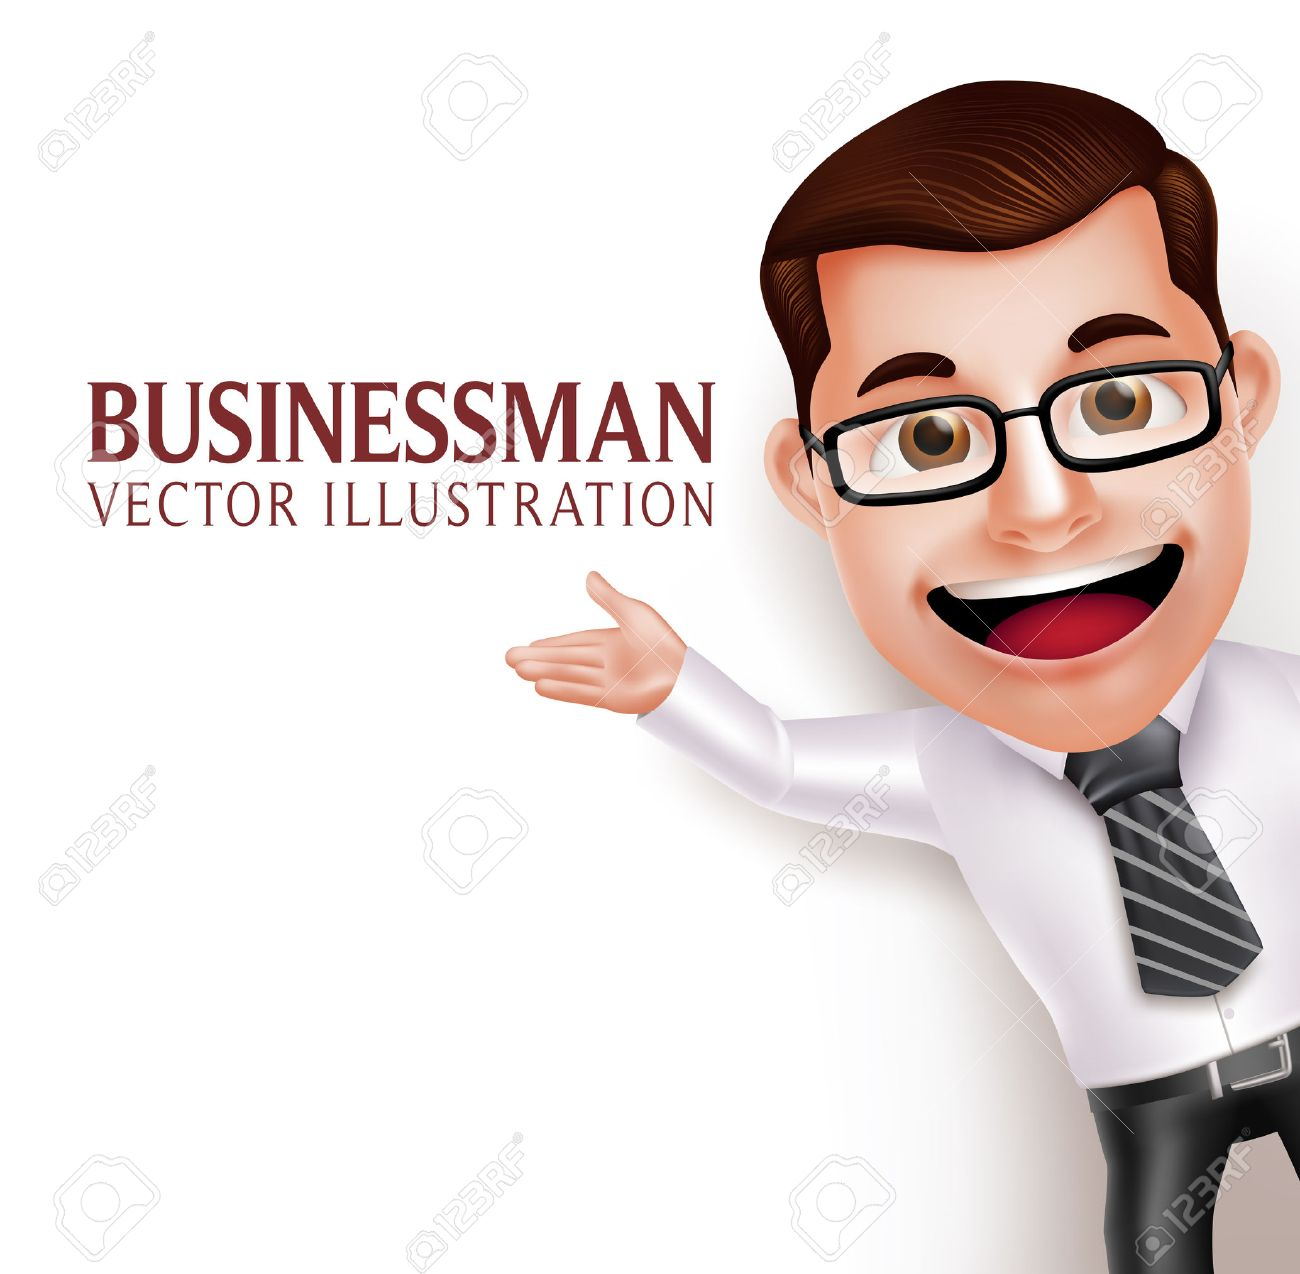 3D Realistic Professional Business Man Character Waving Hand for Presentation in Empty White Background. Vector Illustration - 49422083